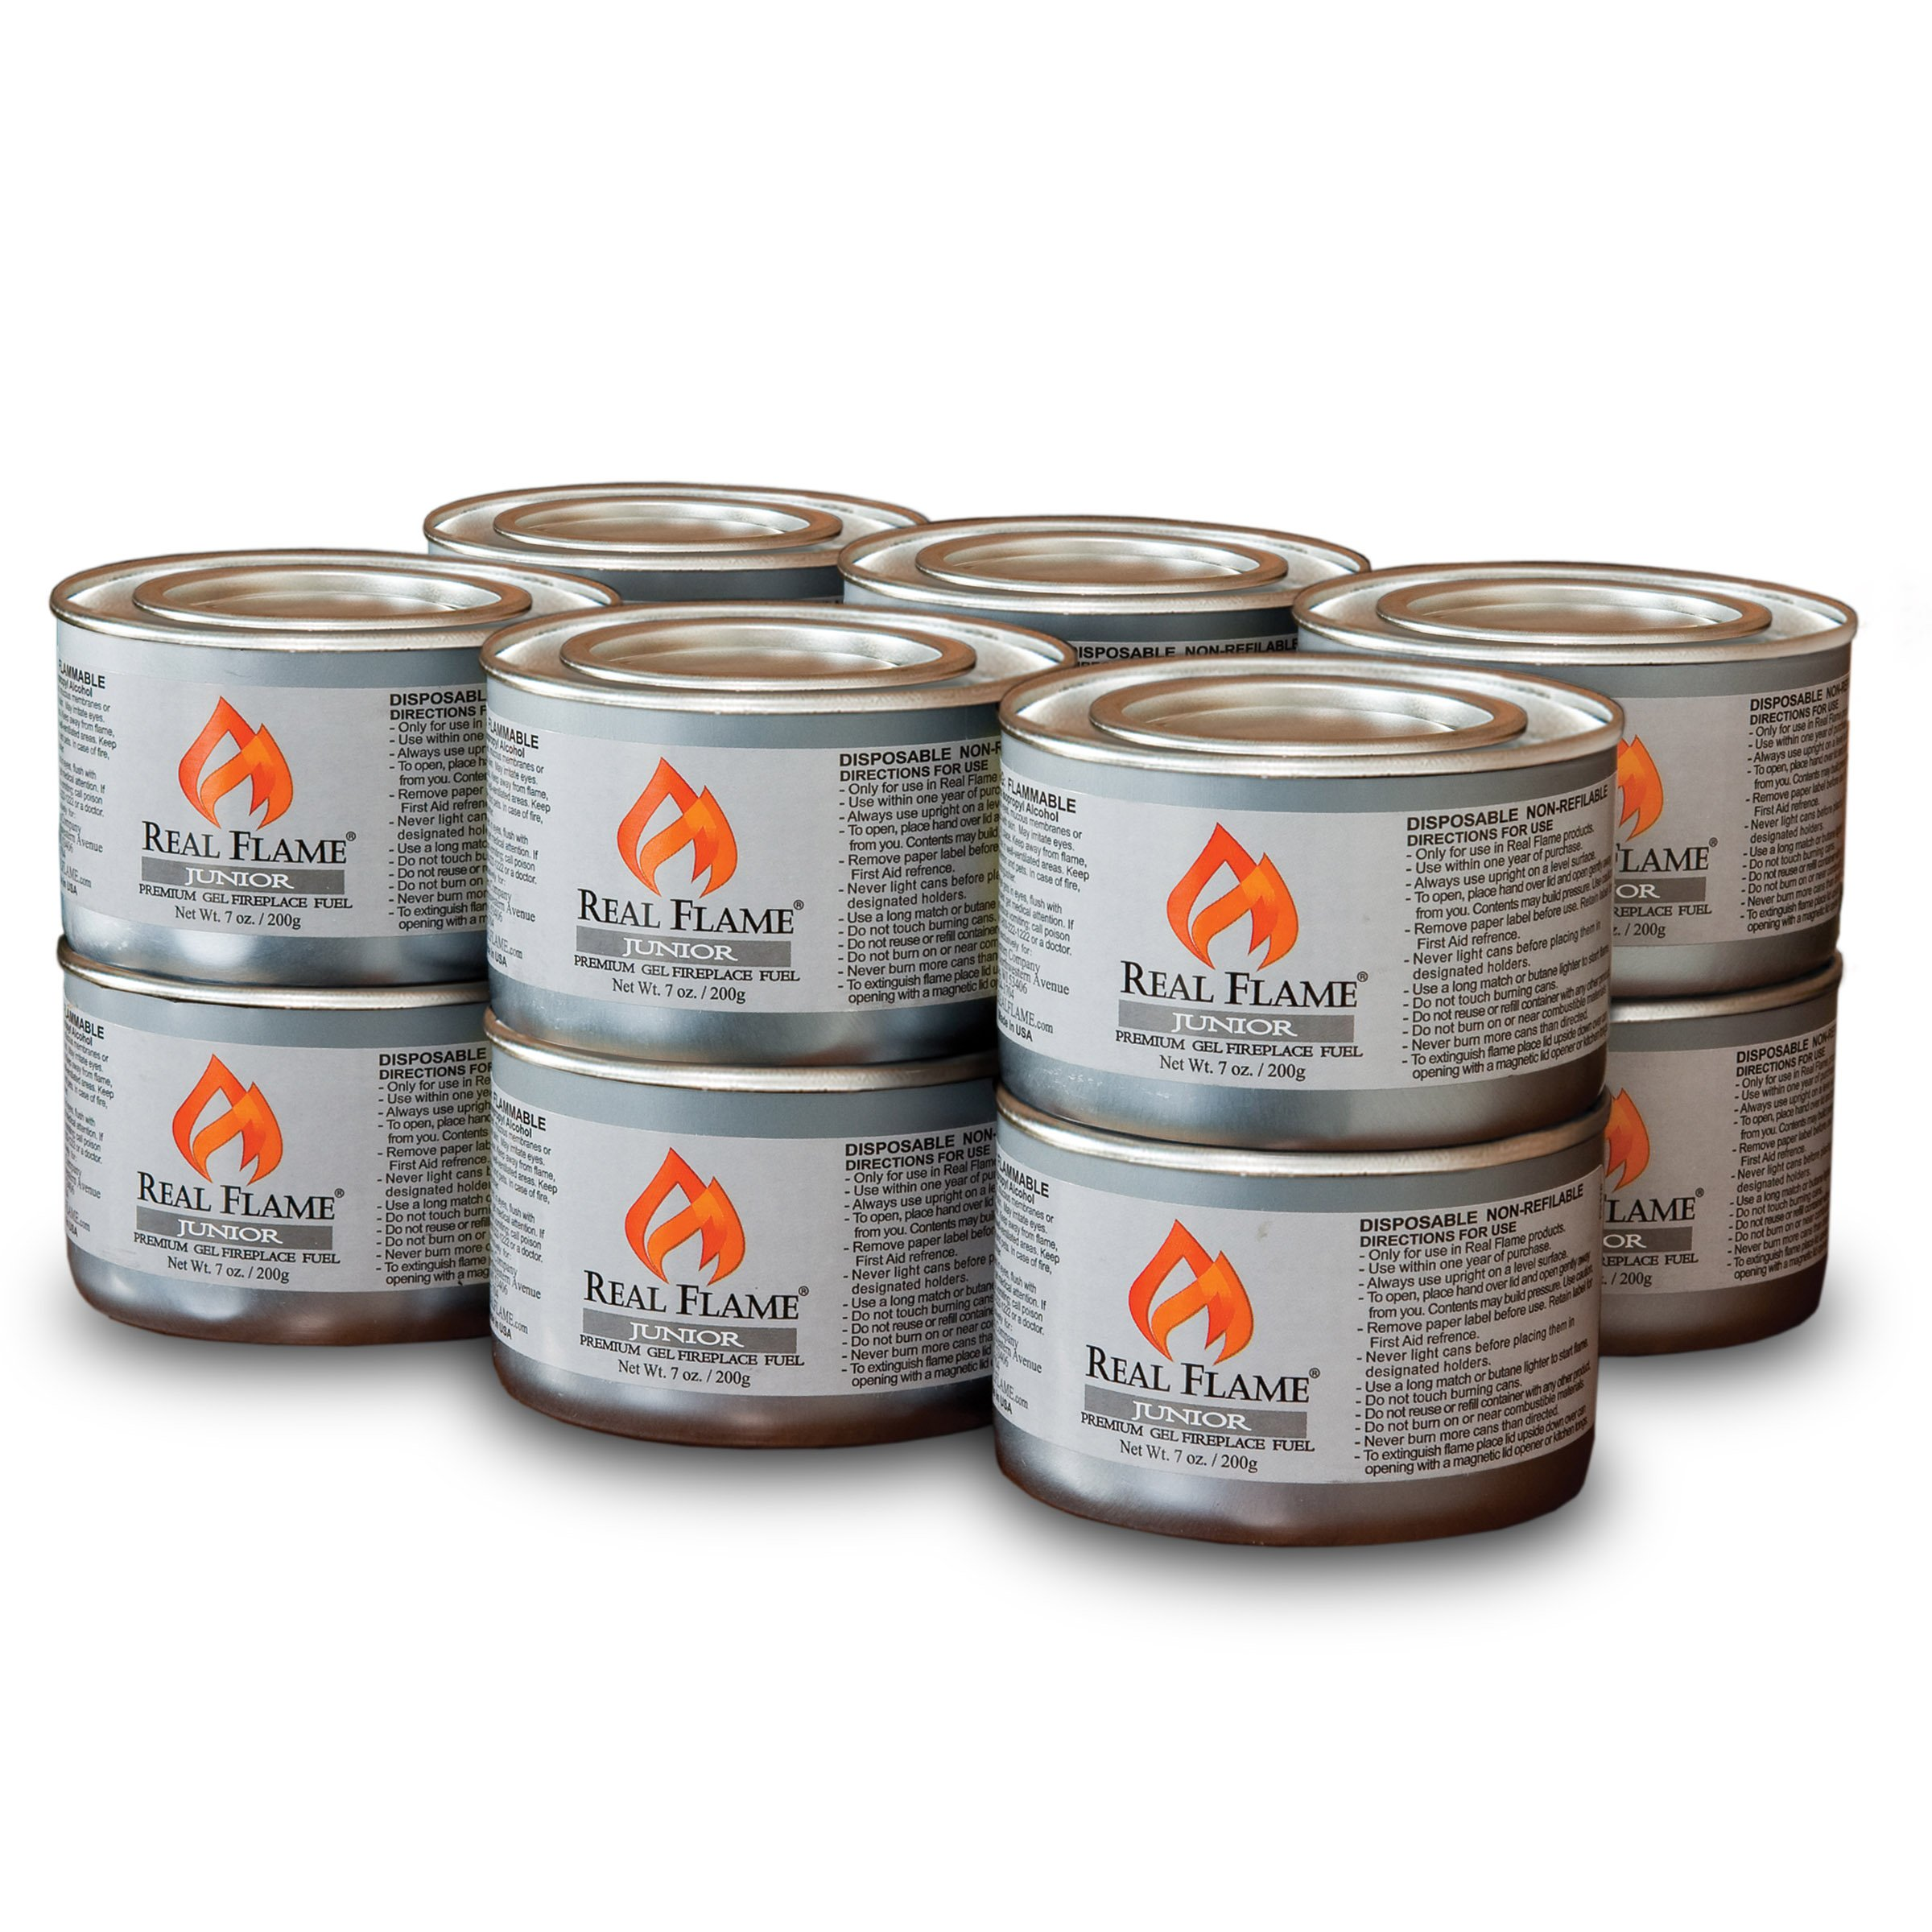 Real Flame Junior Gel Fuel - 7 oz cans; 12-Pack